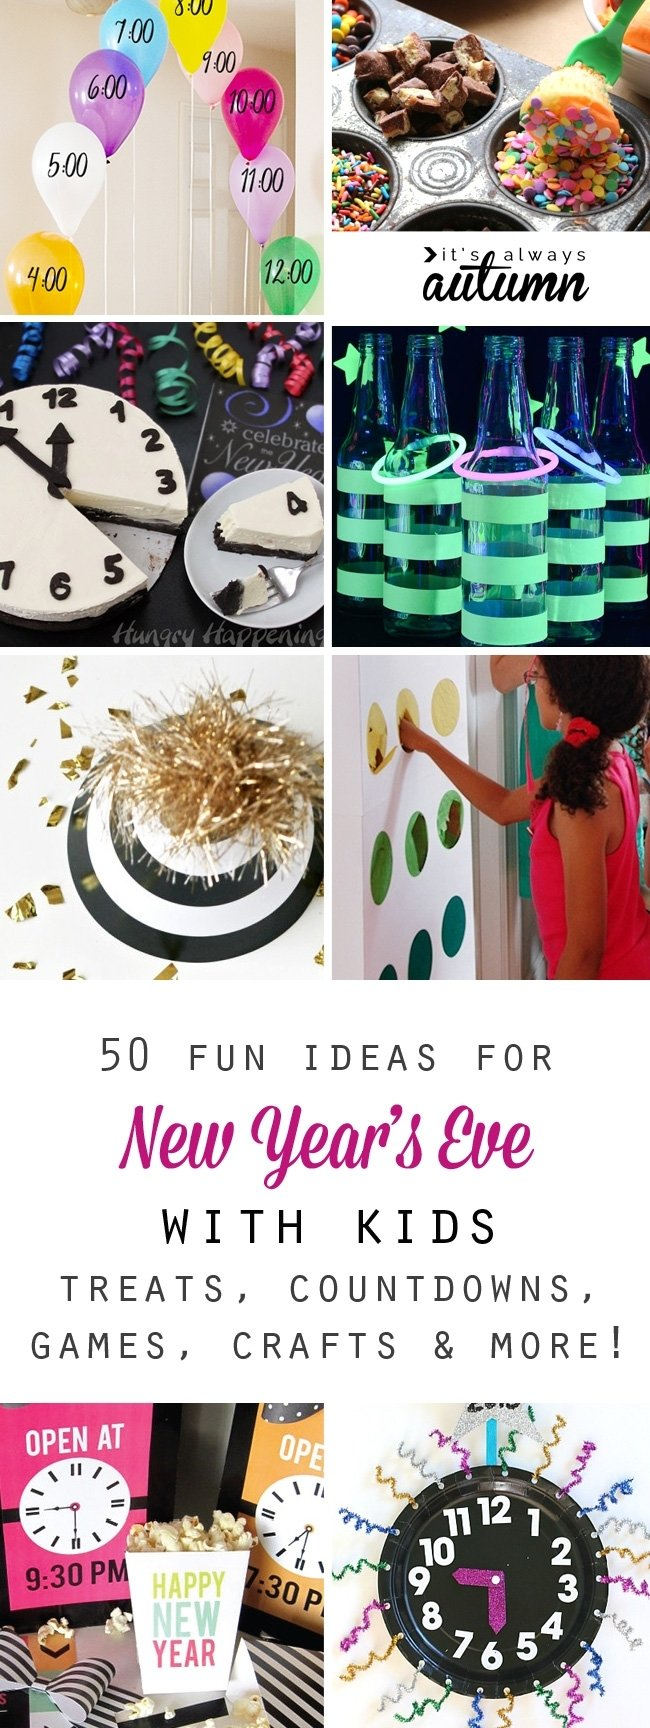 10 Stunning Family Ideas For New Years Eve 50 best ideas for celebrating new years eve with kids its always 13 2020